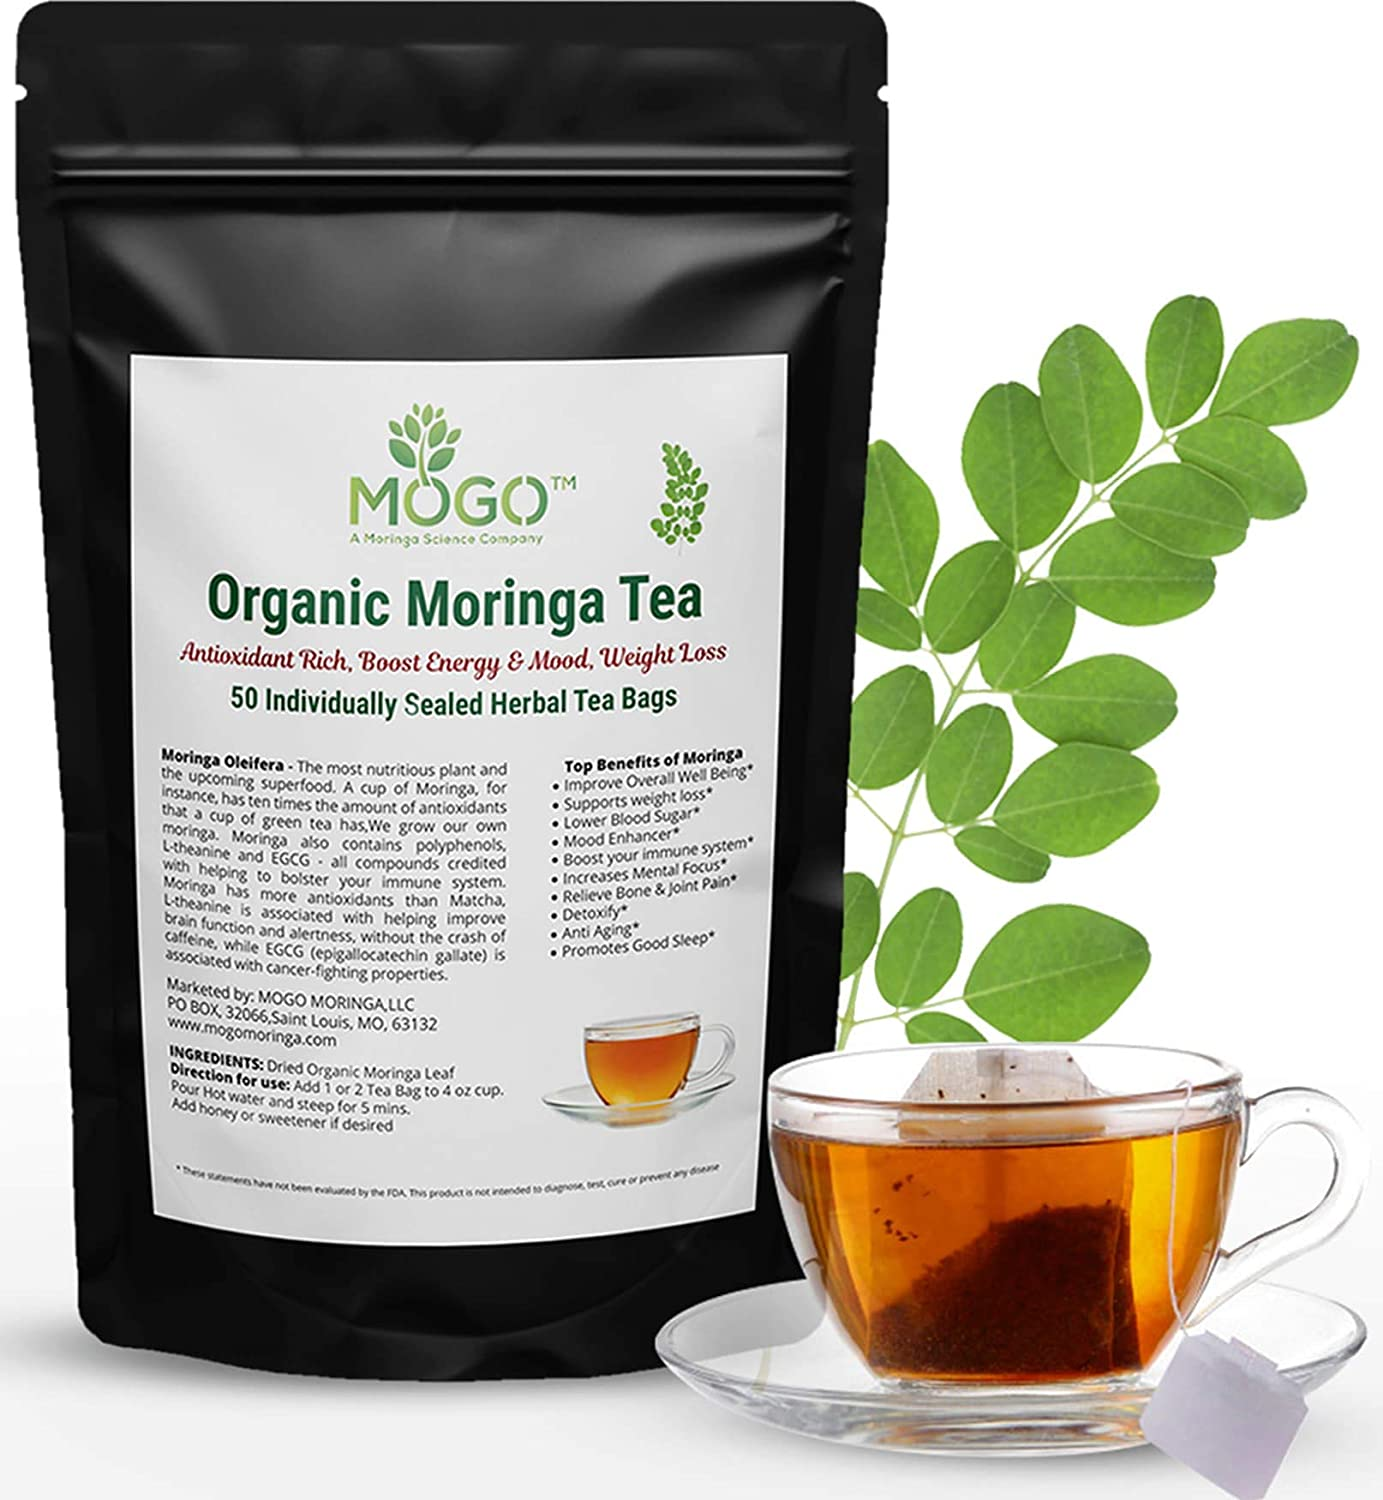 Fresh Organic Moringa Tea,50 Single Tea Bags.Immune & Energy Booster,Natural Weight Loss,Stress Relief, Antioxidants Loaded Superfood Tea.